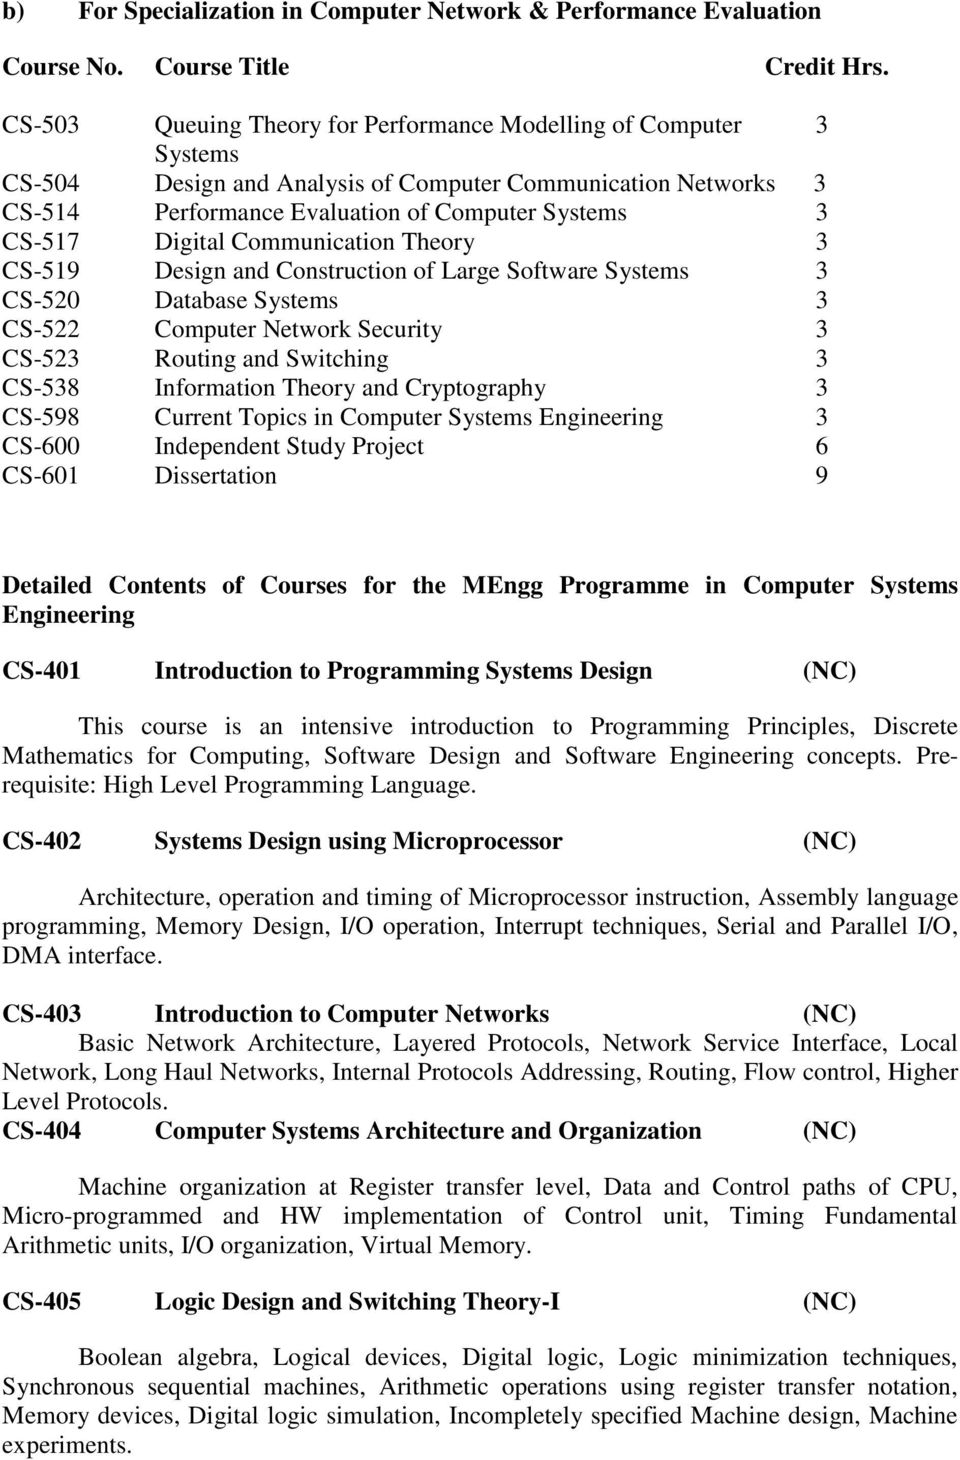 Digital Communication Theory 3 CS-519 Design and Construction of Large Software Systems 3 CS-520 Database Systems 3 CS-522 Computer Network Security 3 CS-523 Routing and Switching 3 CS-538